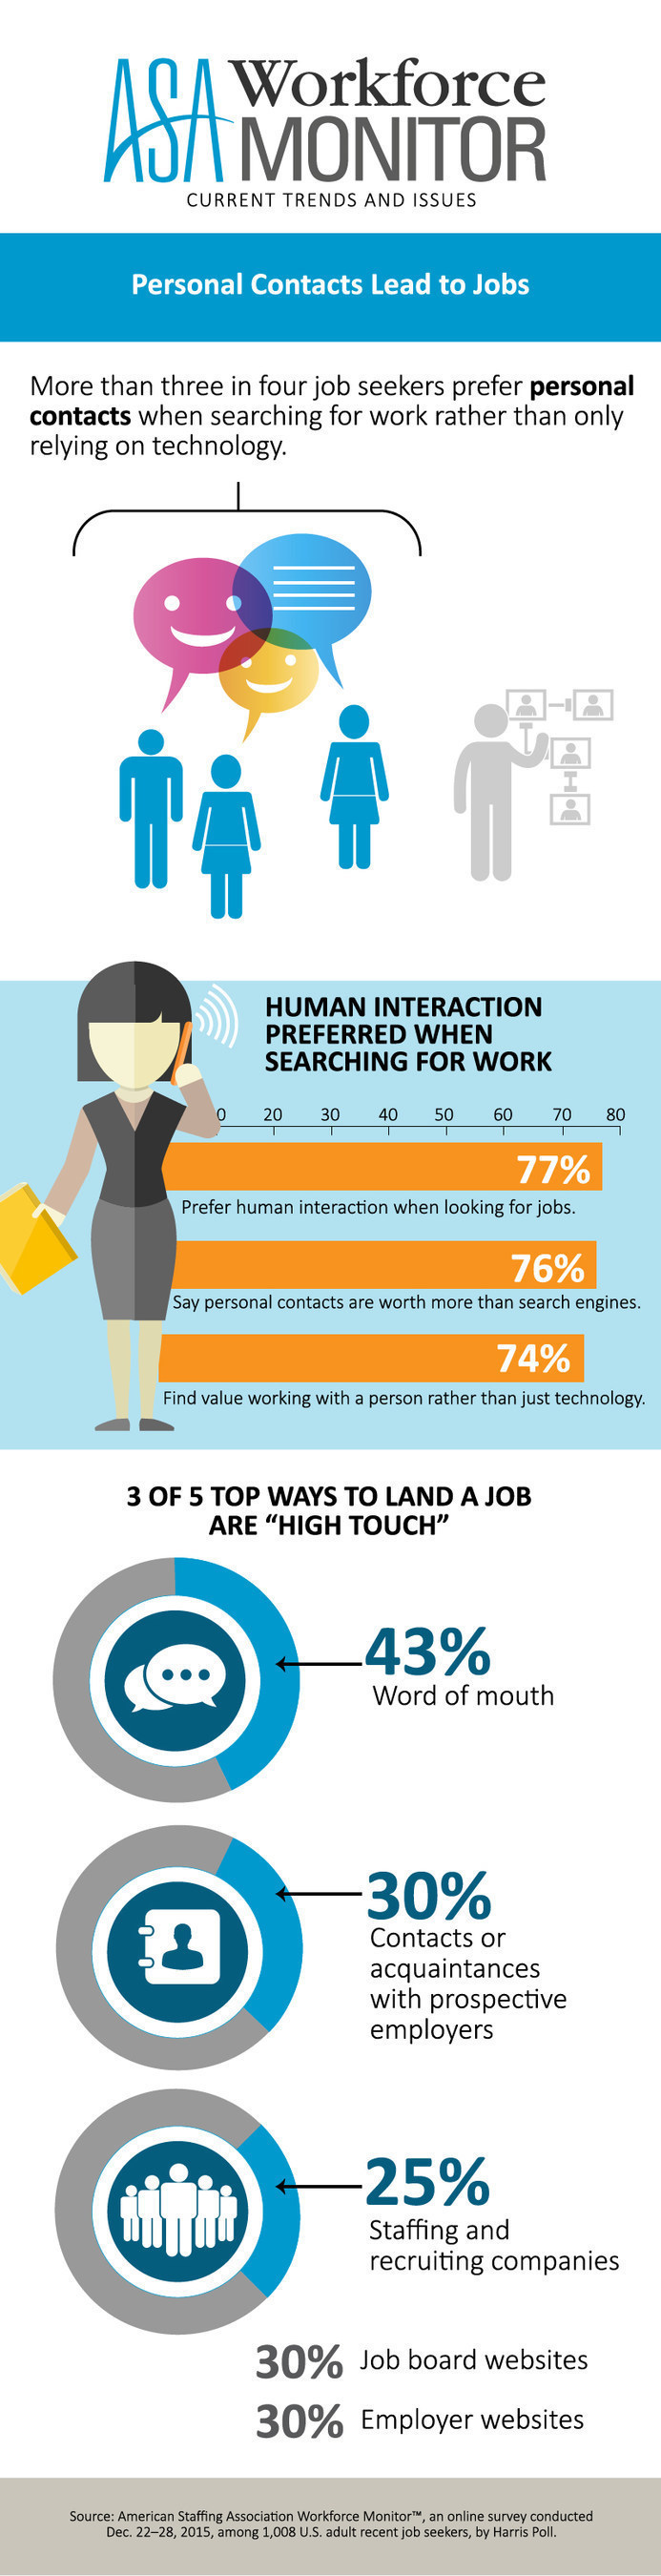 American Staffing Association Workforce Monitor: Personal Contacts Lead to Jobs